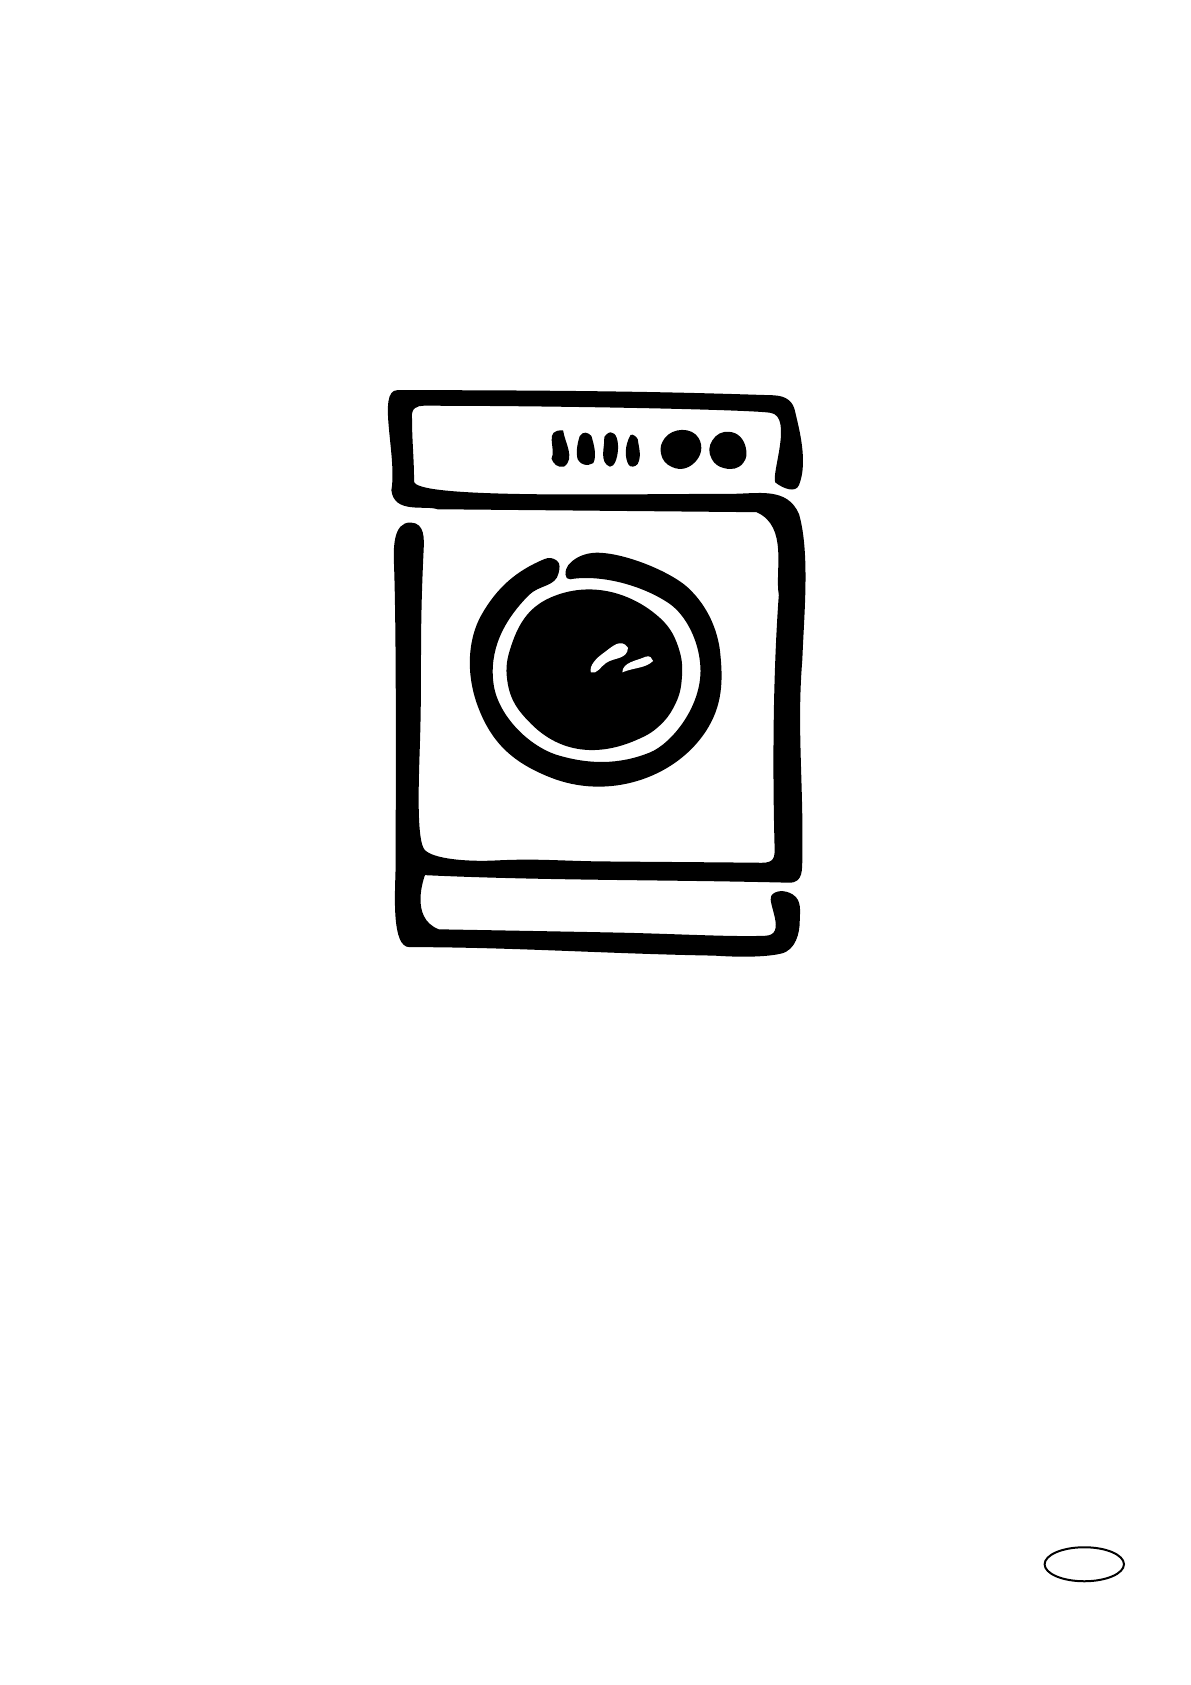 Electrolux Washer/Dryer EW 1200 i User Guide